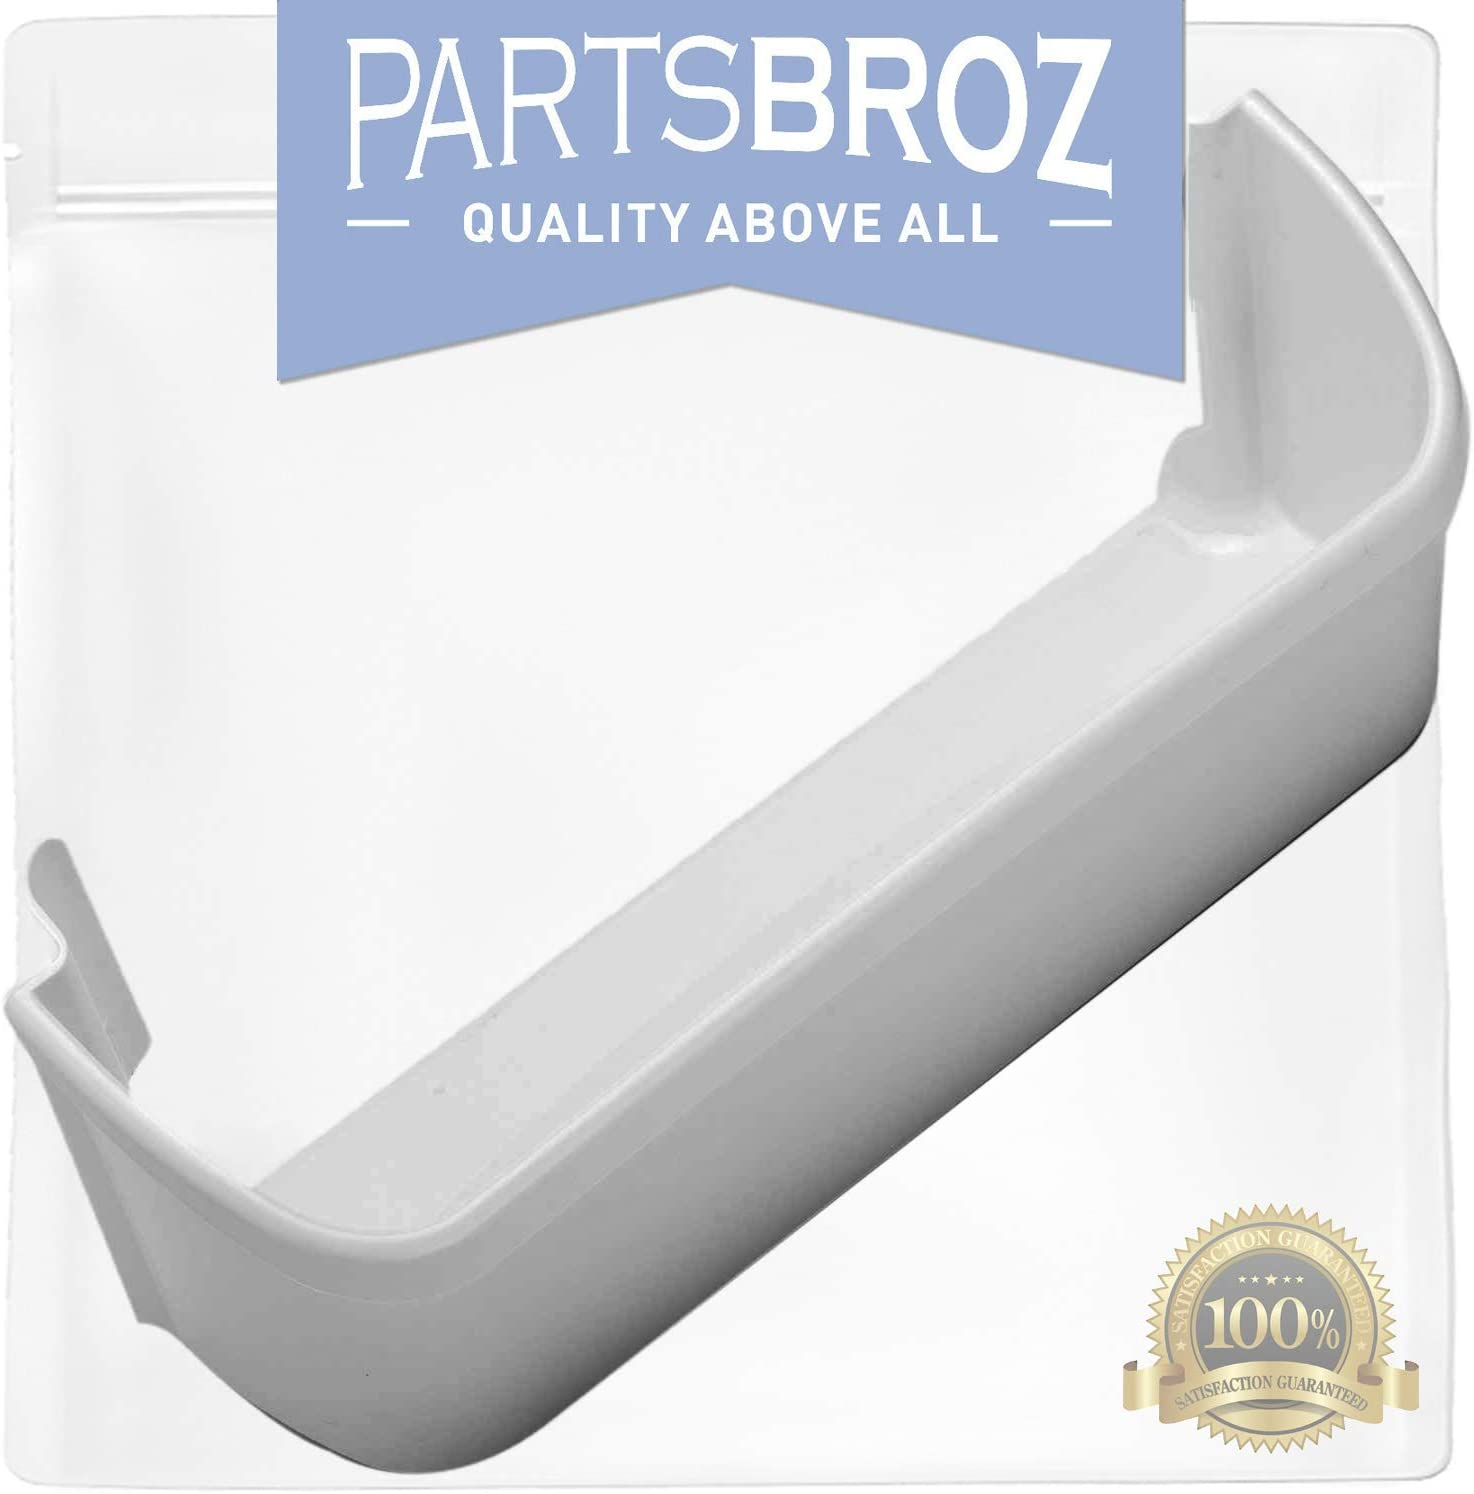 240323001 Refrigerator Replacement Bin for Electrolux Fridges by PartsBroz - Replaces Part Numbers AP2115741, 240323007, 890954, AH429724, EA429724, PS429724 61OzFdw1okL